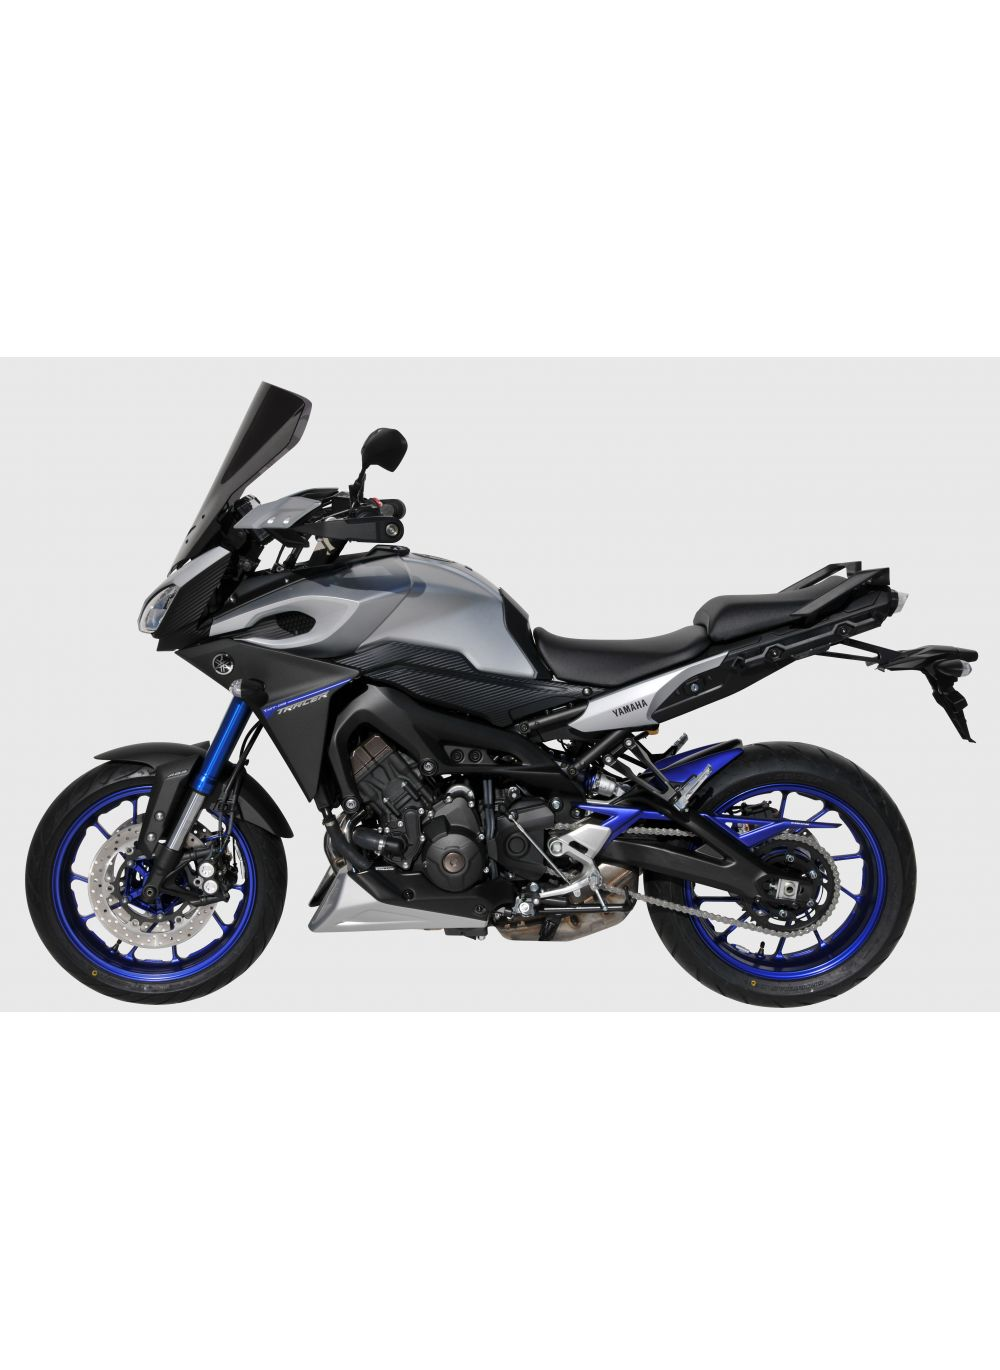 ermax hugger rear fender yamaha mt 09 tracer 900 2015. Black Bedroom Furniture Sets. Home Design Ideas